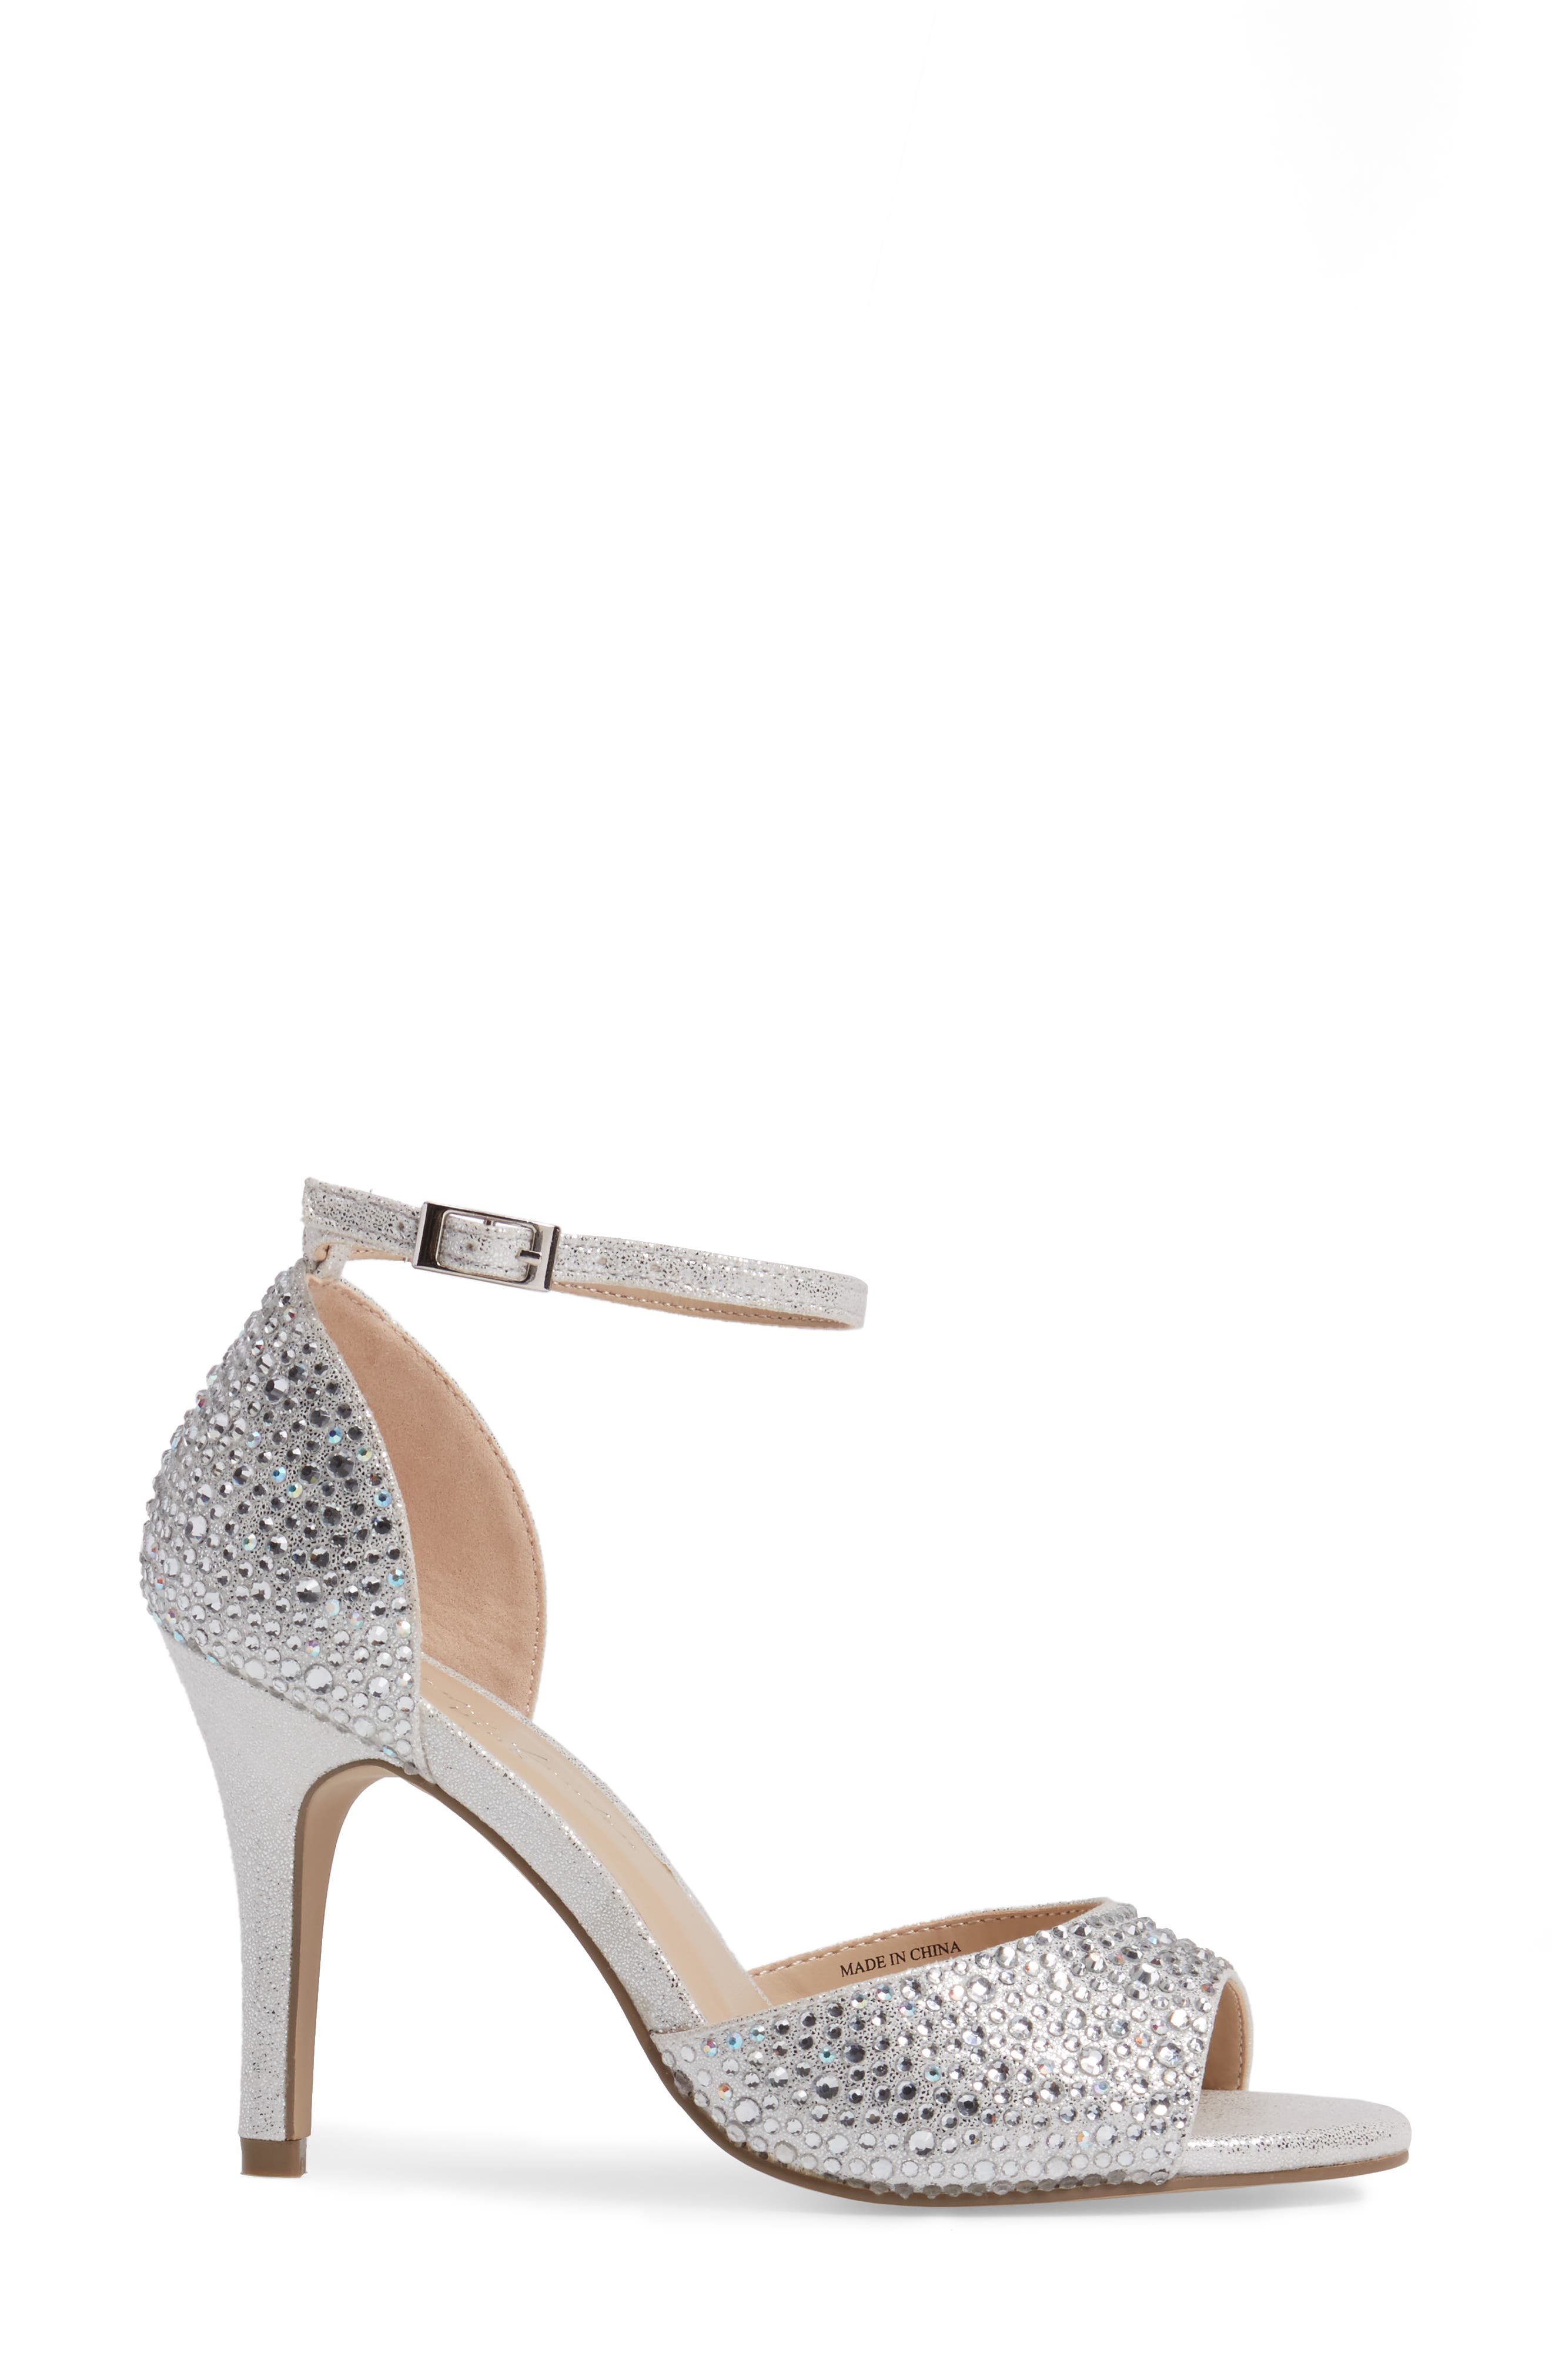 Mira Embellished Glitter Sandal,                             Alternate thumbnail 3, color,